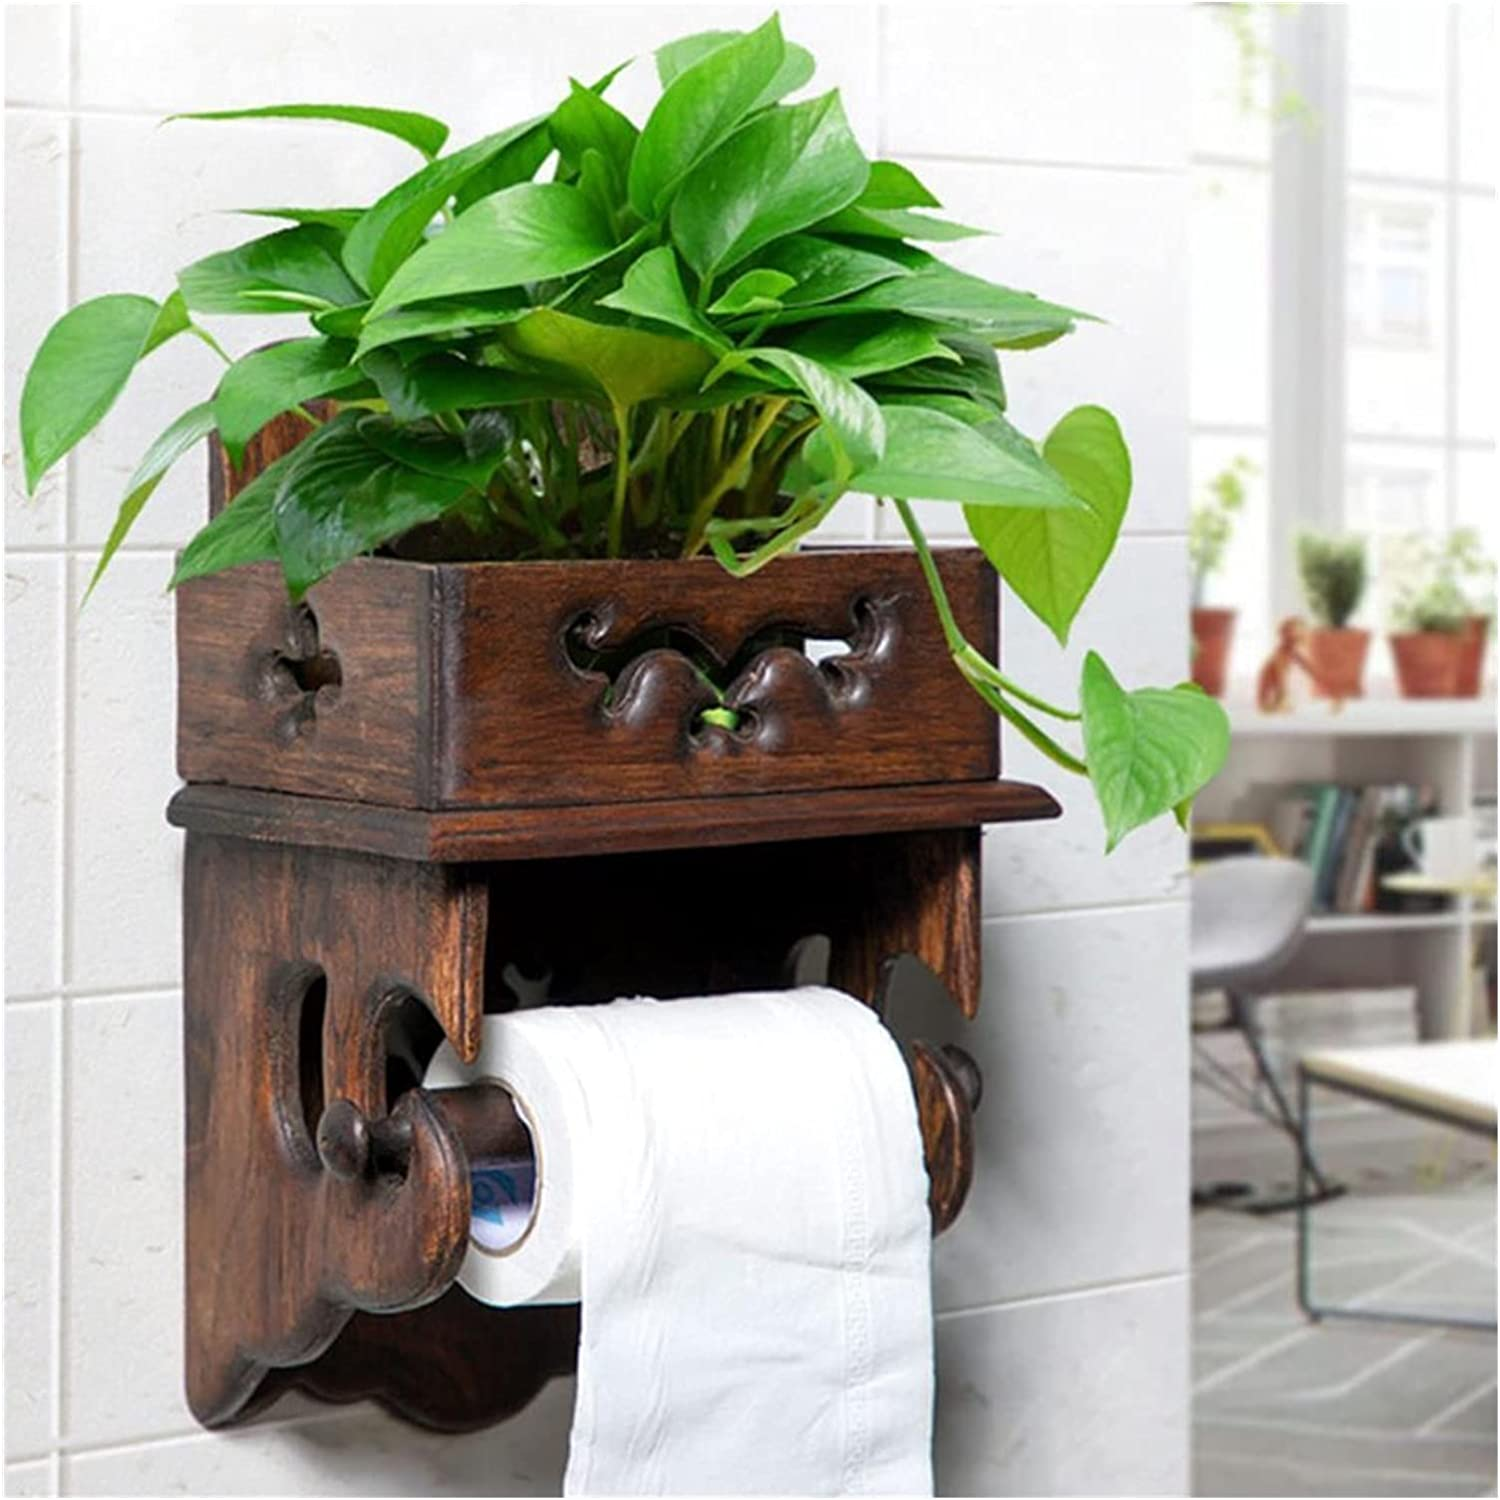 Chuyuhao Toilet gift Paper Holder Vintage Toile Wood Rack Easy-to-use Towel